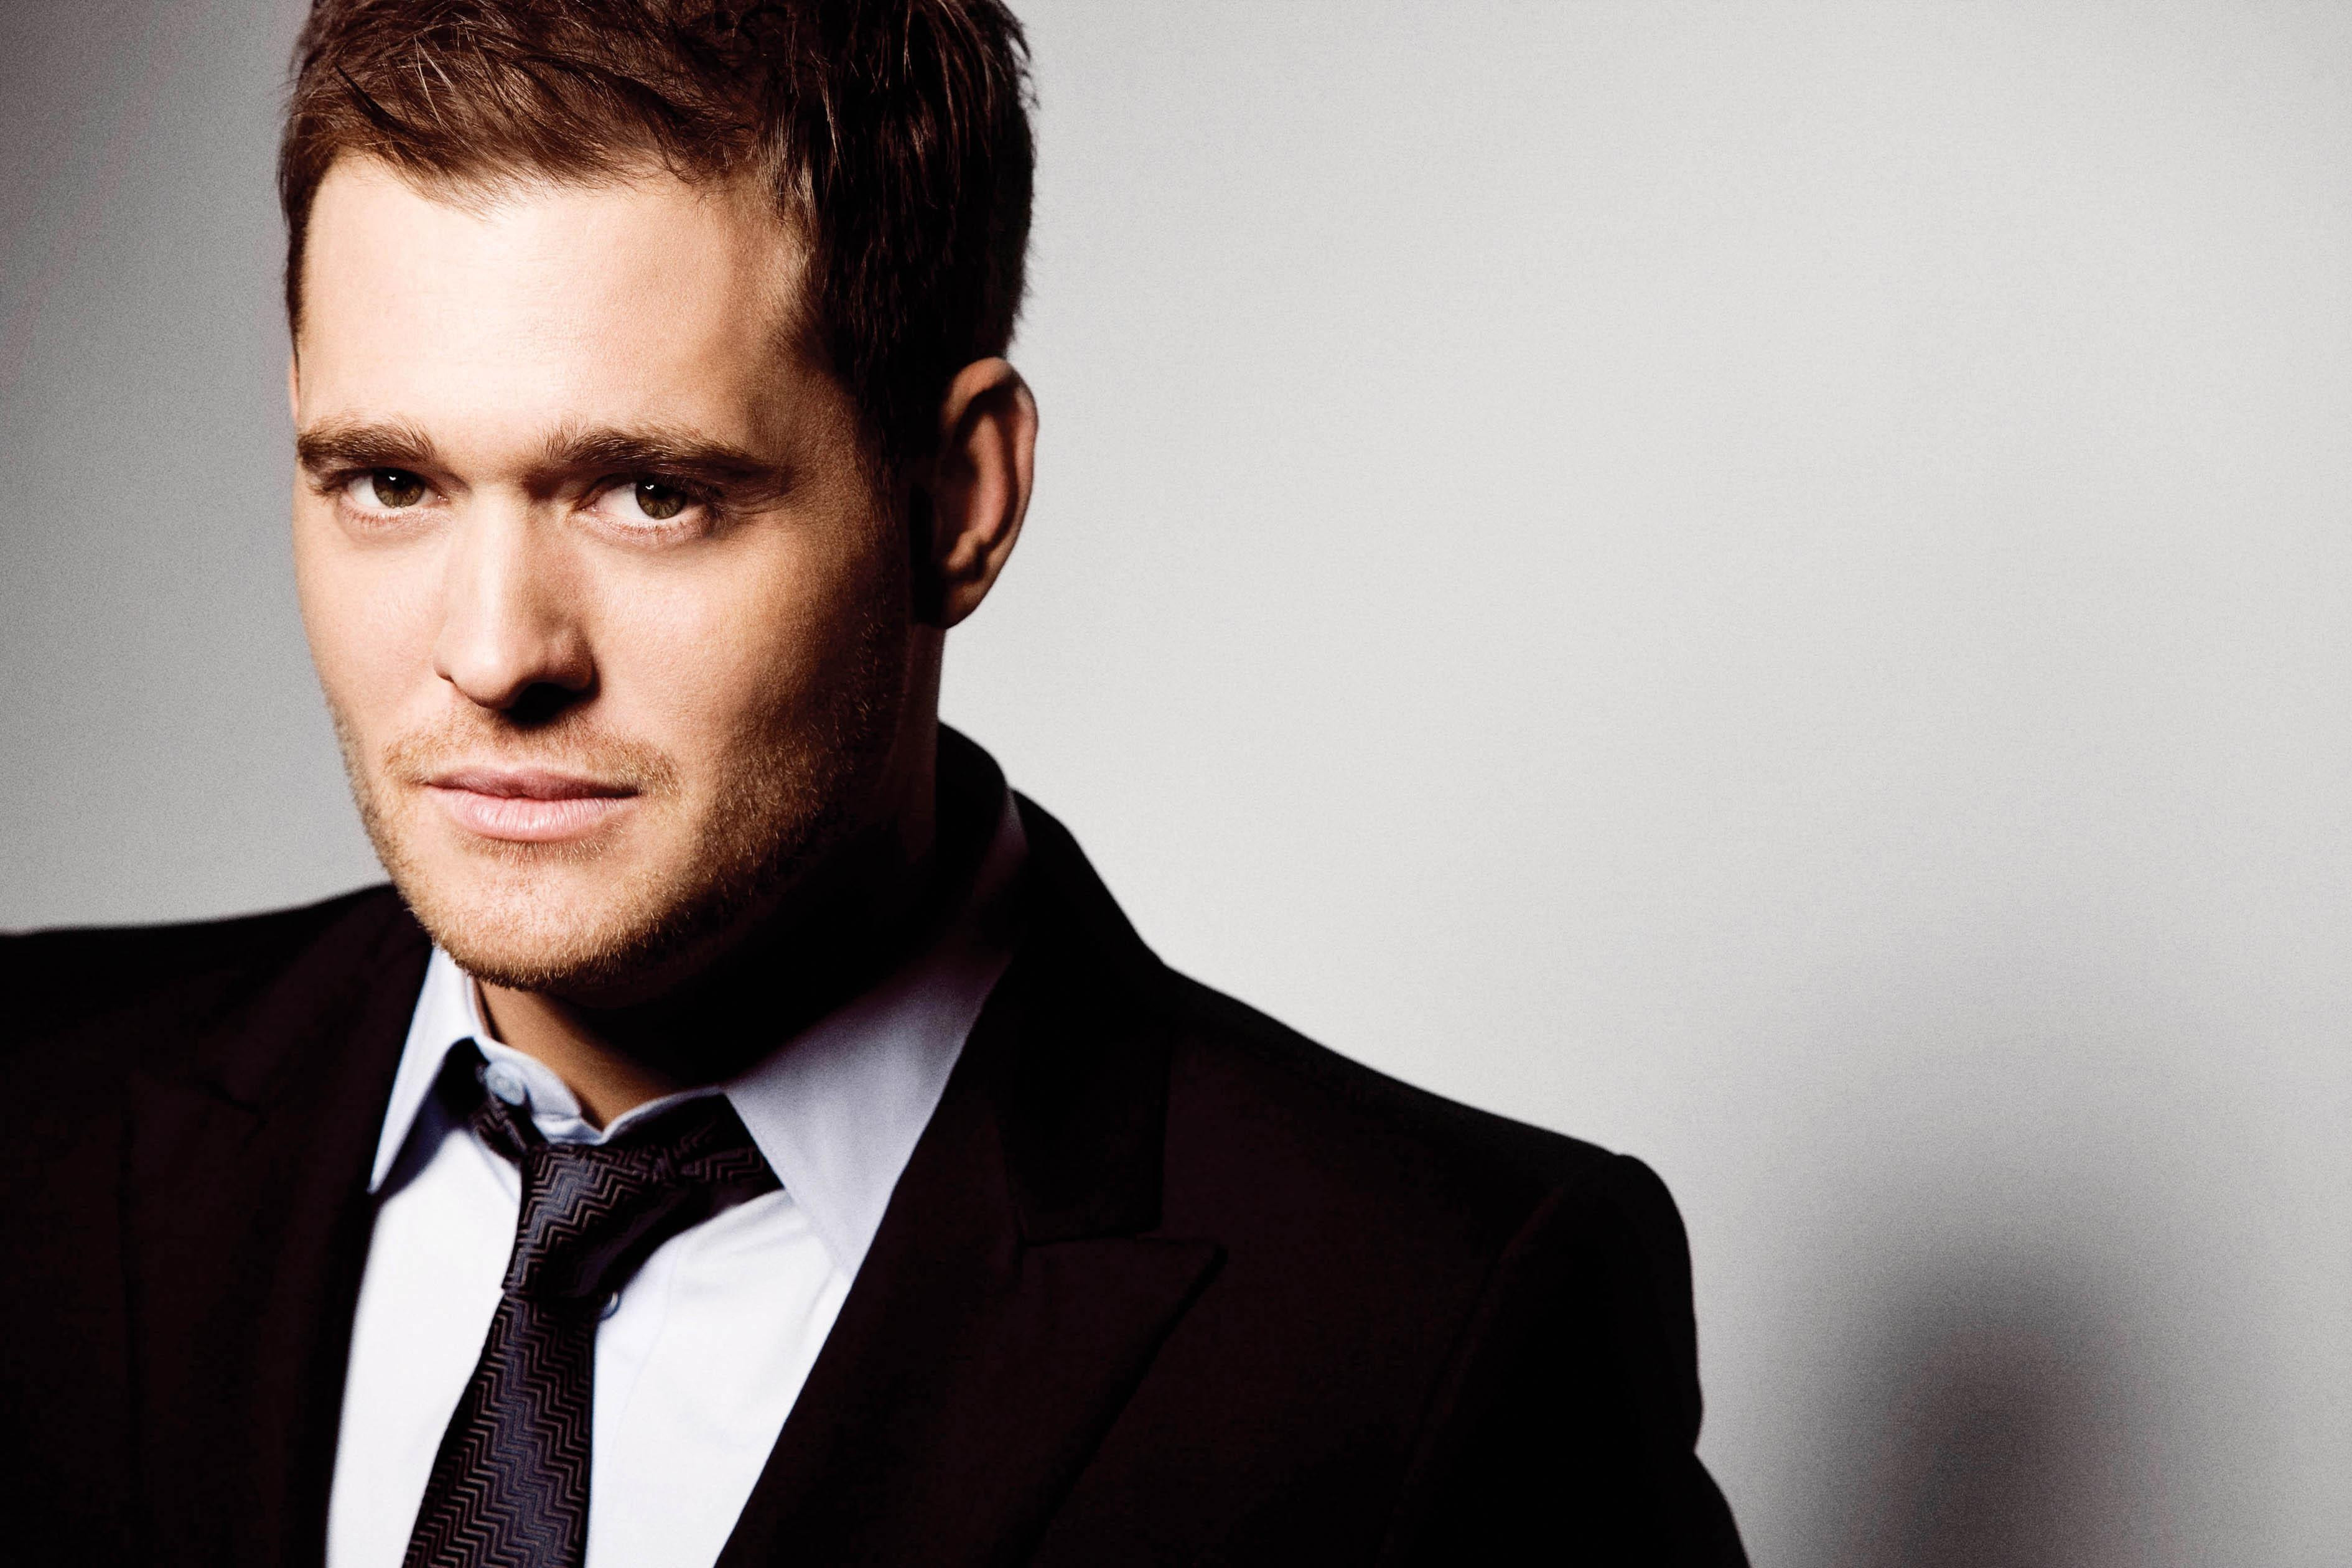 Michael Buble Headshot - Name That Mic - Celebrity Microphone Trivia!